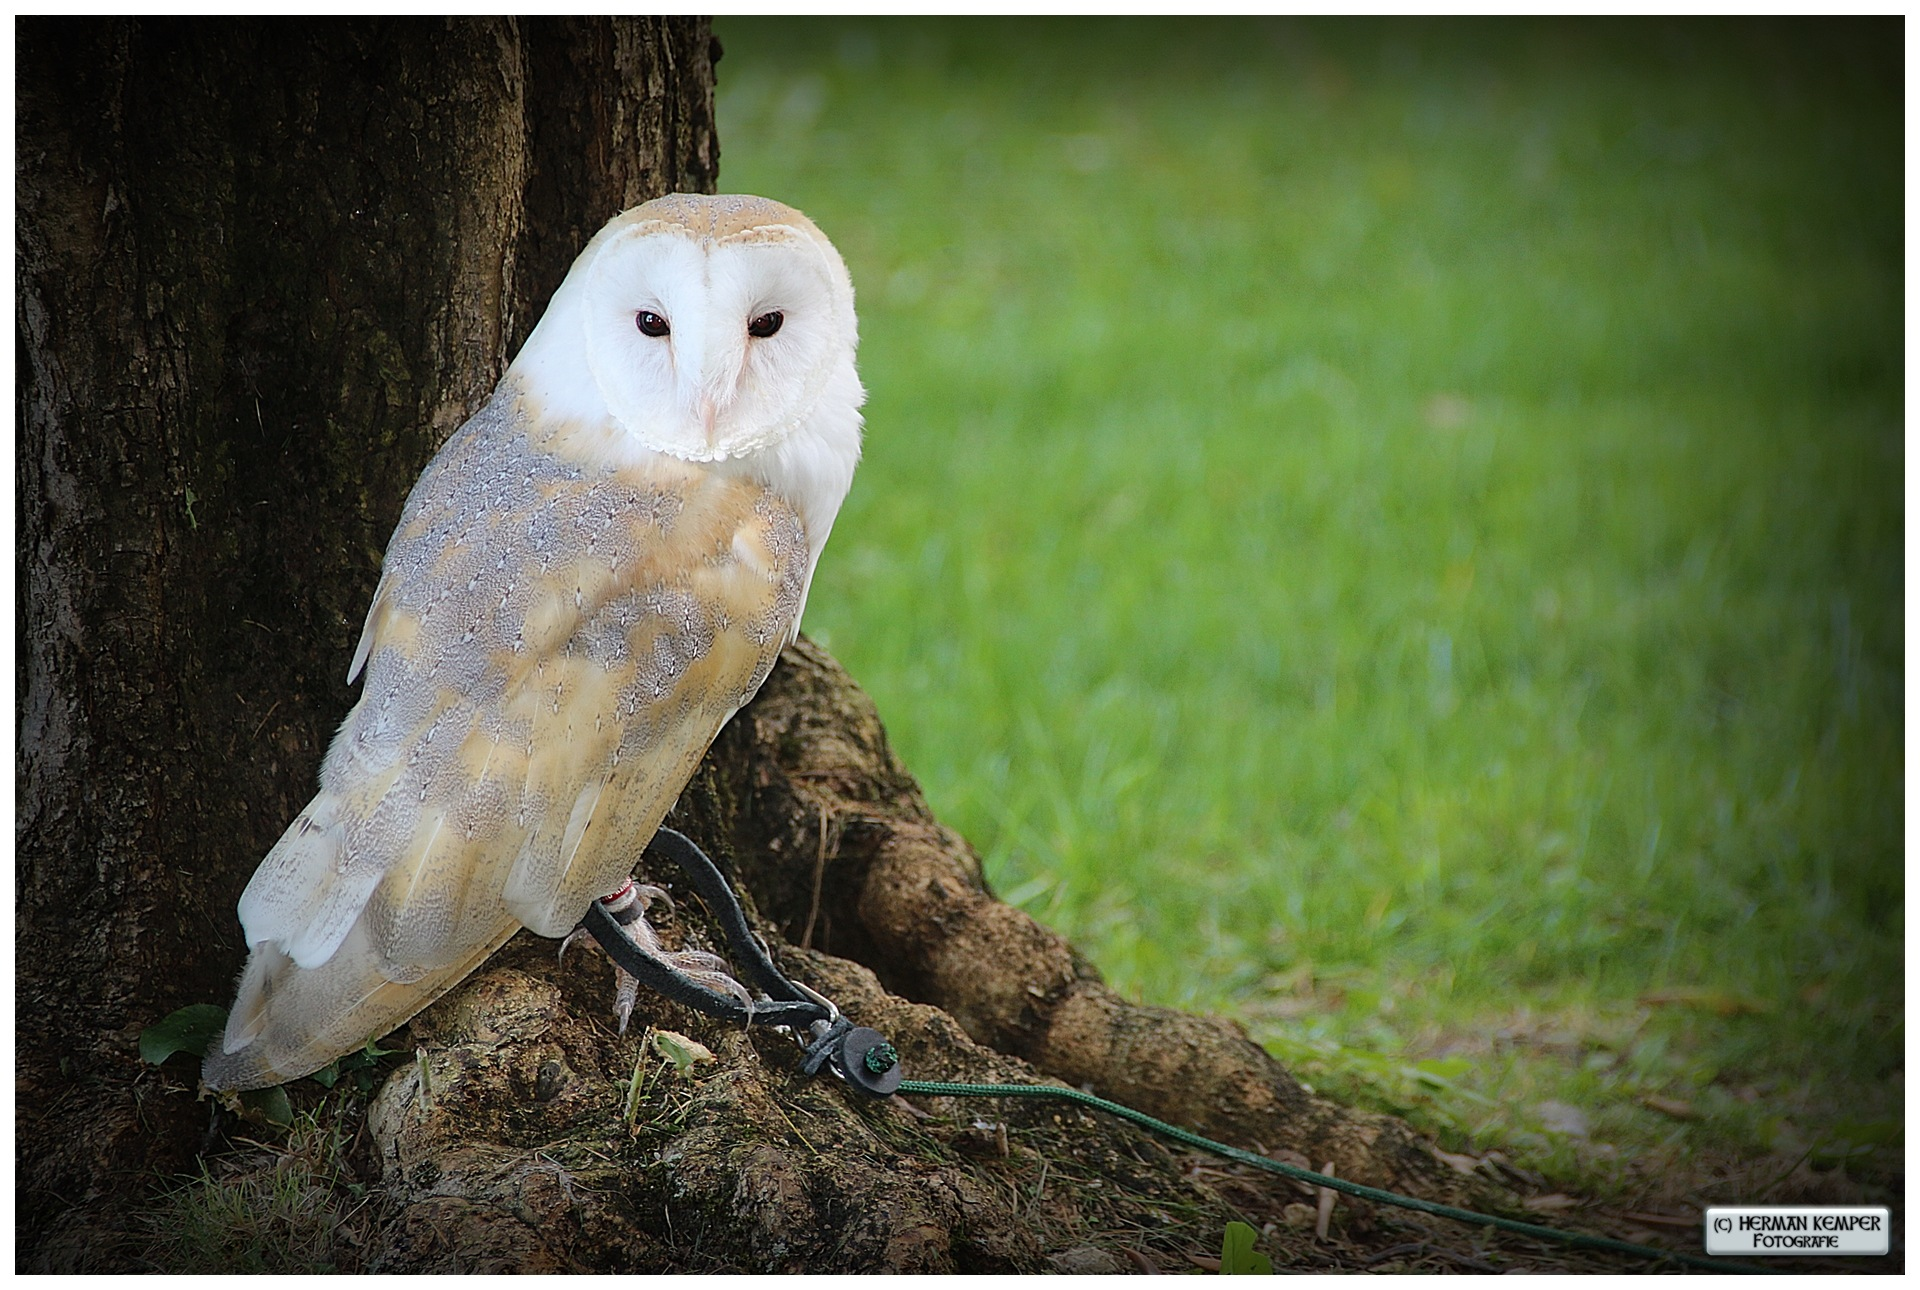 Owl by Shoot-by-Herman